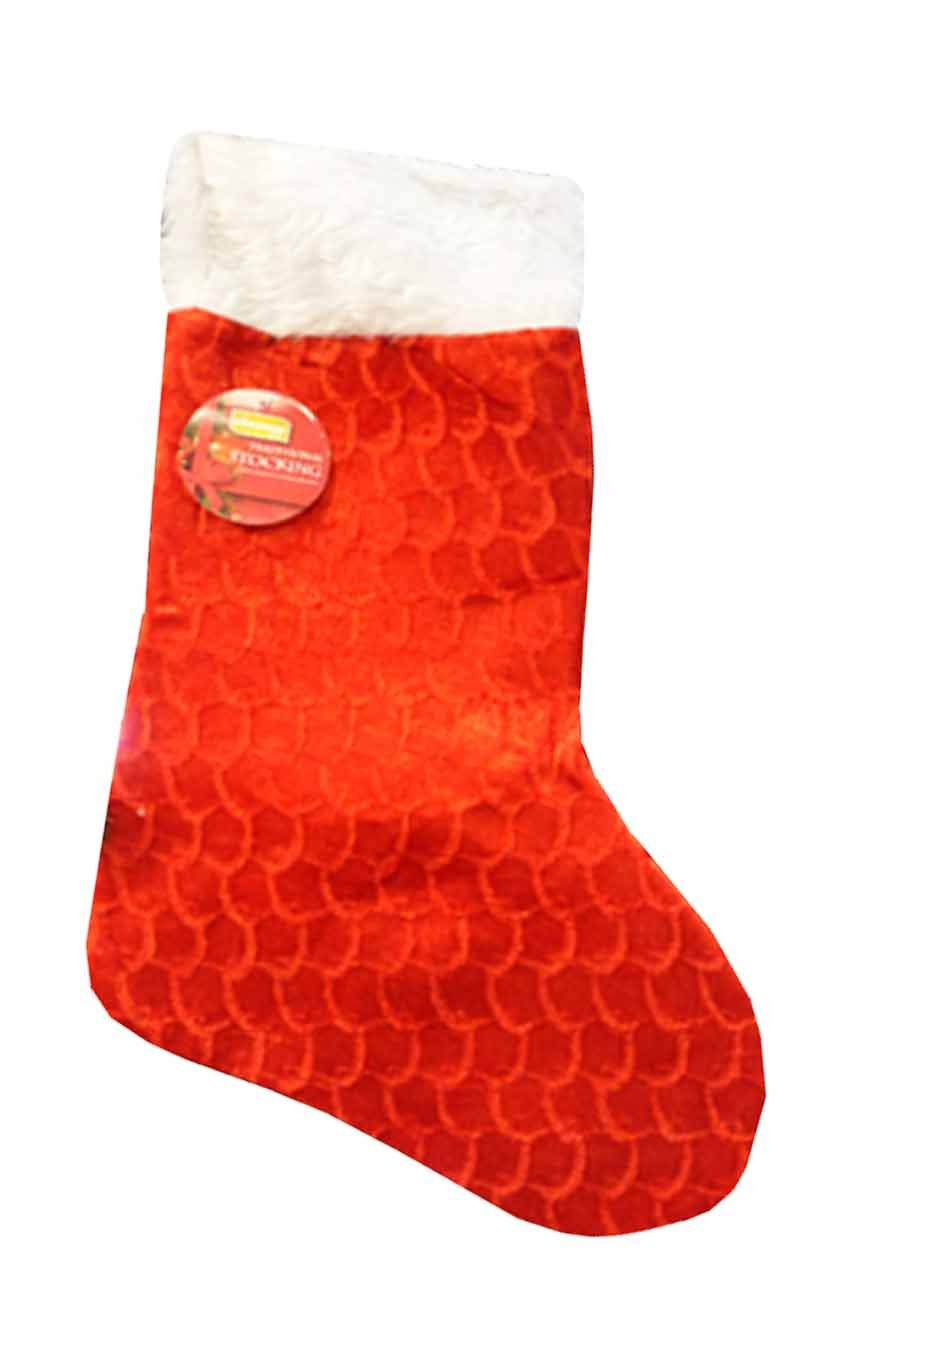 large Plush christmas stocking - 44cm by 27cm wide at the top ...